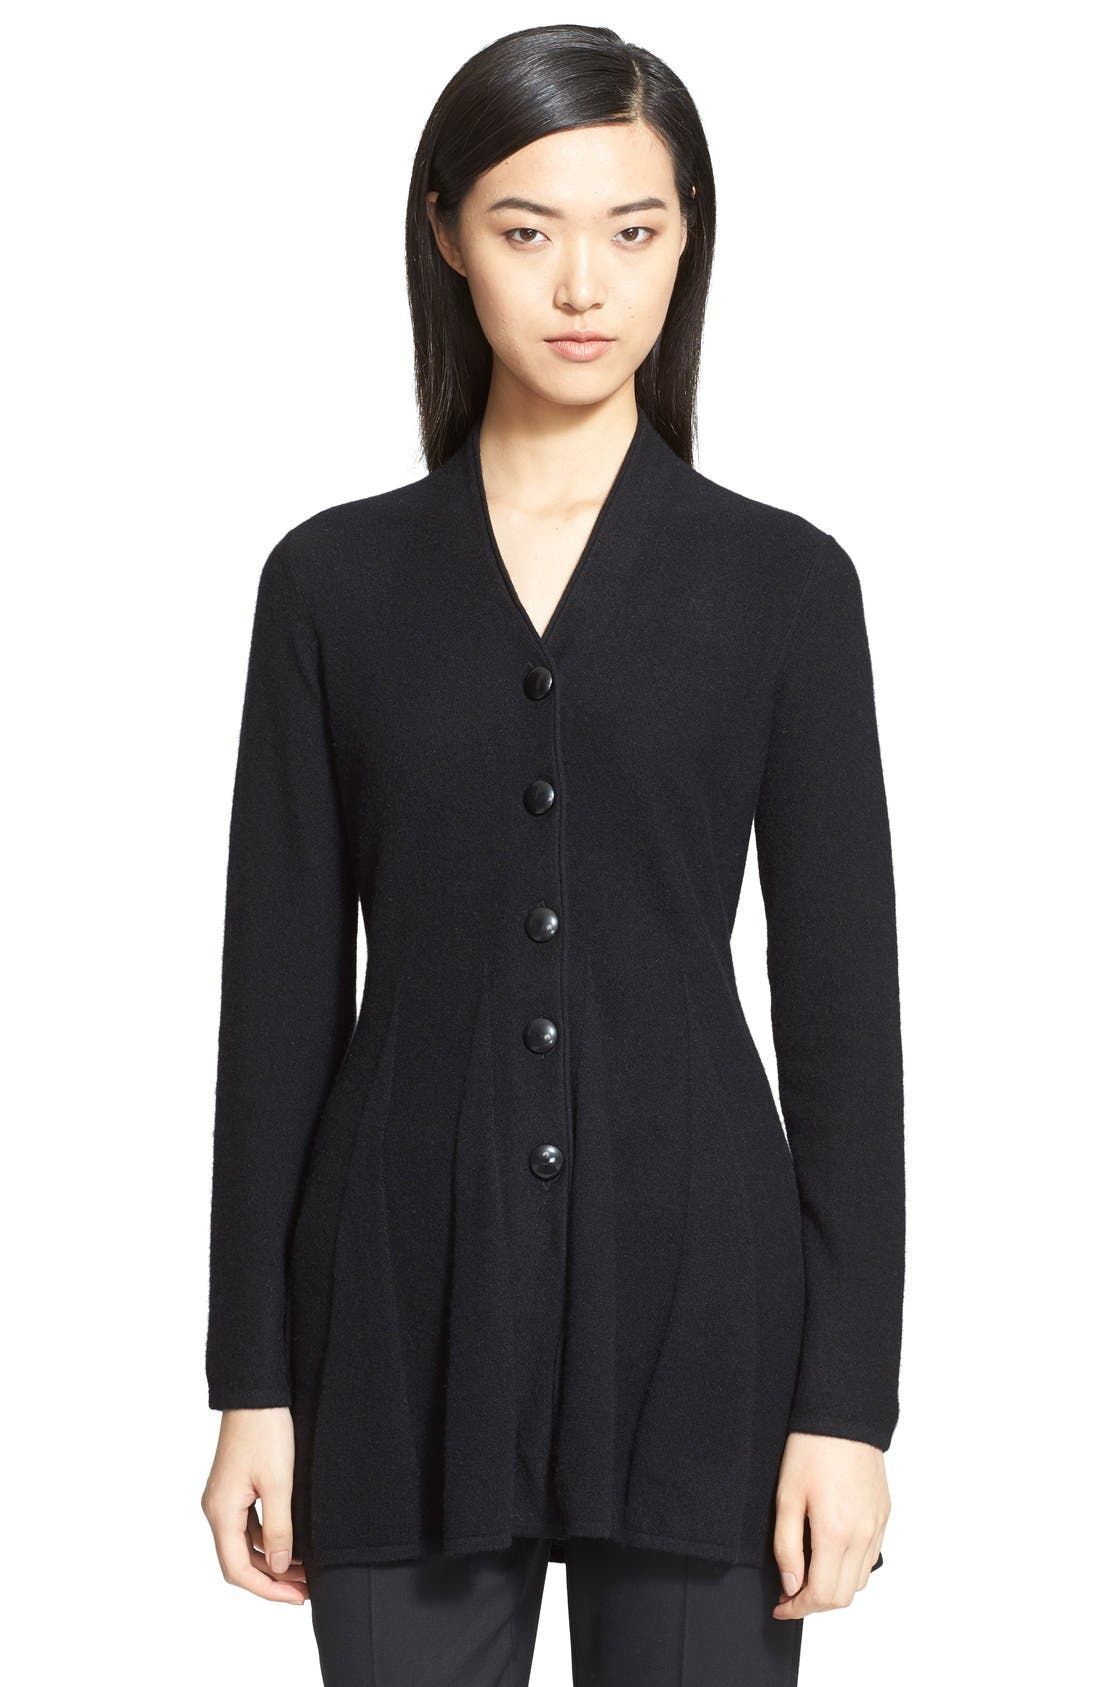 Alternate Image 1 Selected - Armani Collezioni Godet Pleat Cashmere Cardigan